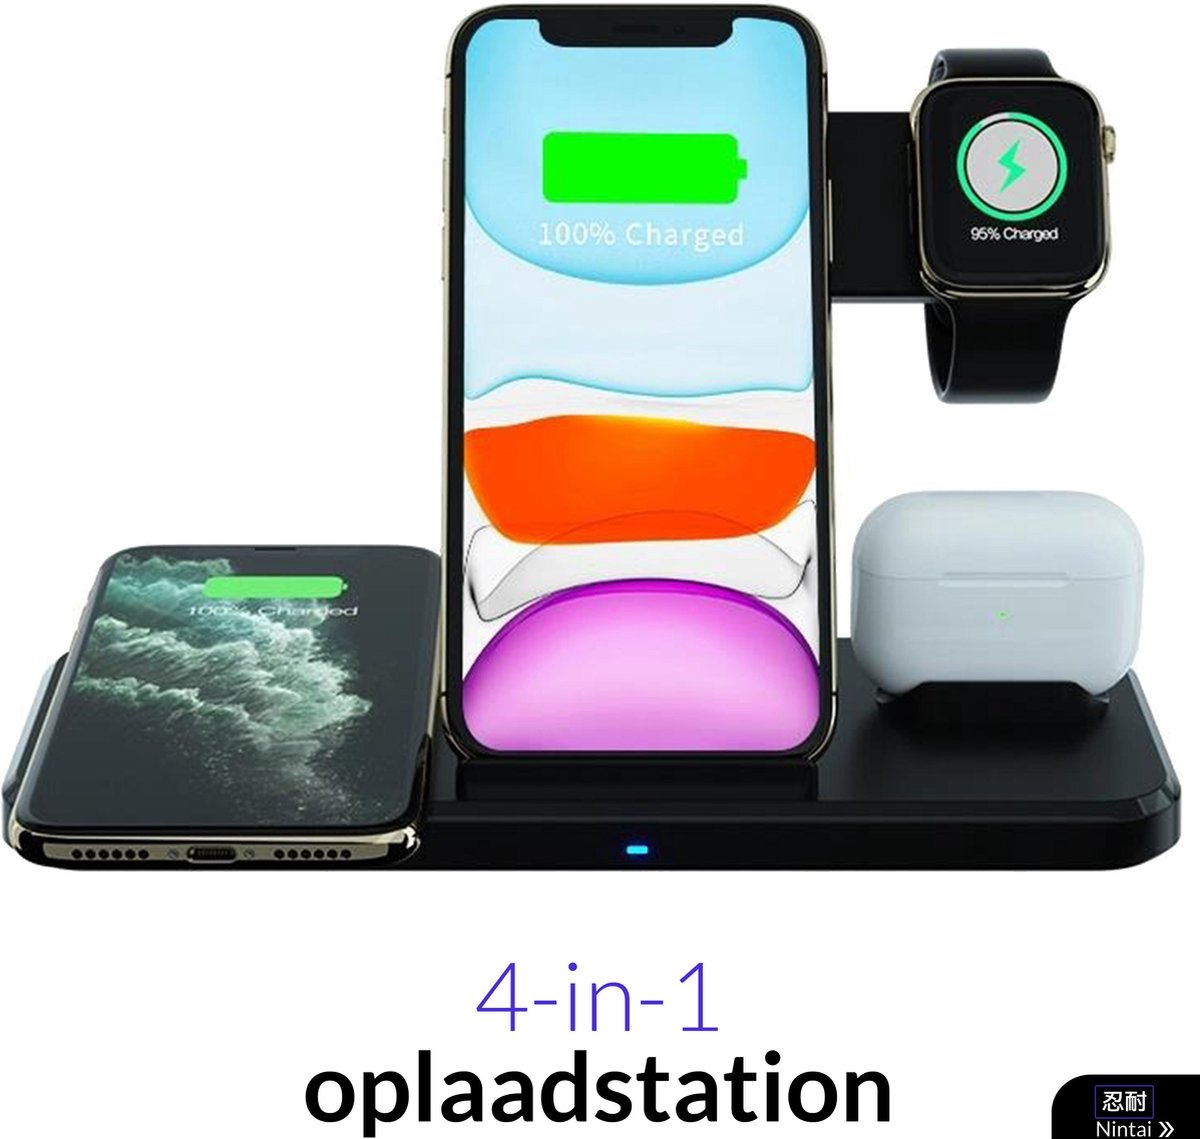 Oplaadstation iPhone 15W - 4 in 1 Docking Station Apple - Snelle Draadloze Oplader iPhone / iWatch / AirPods - iPhone 12 lader